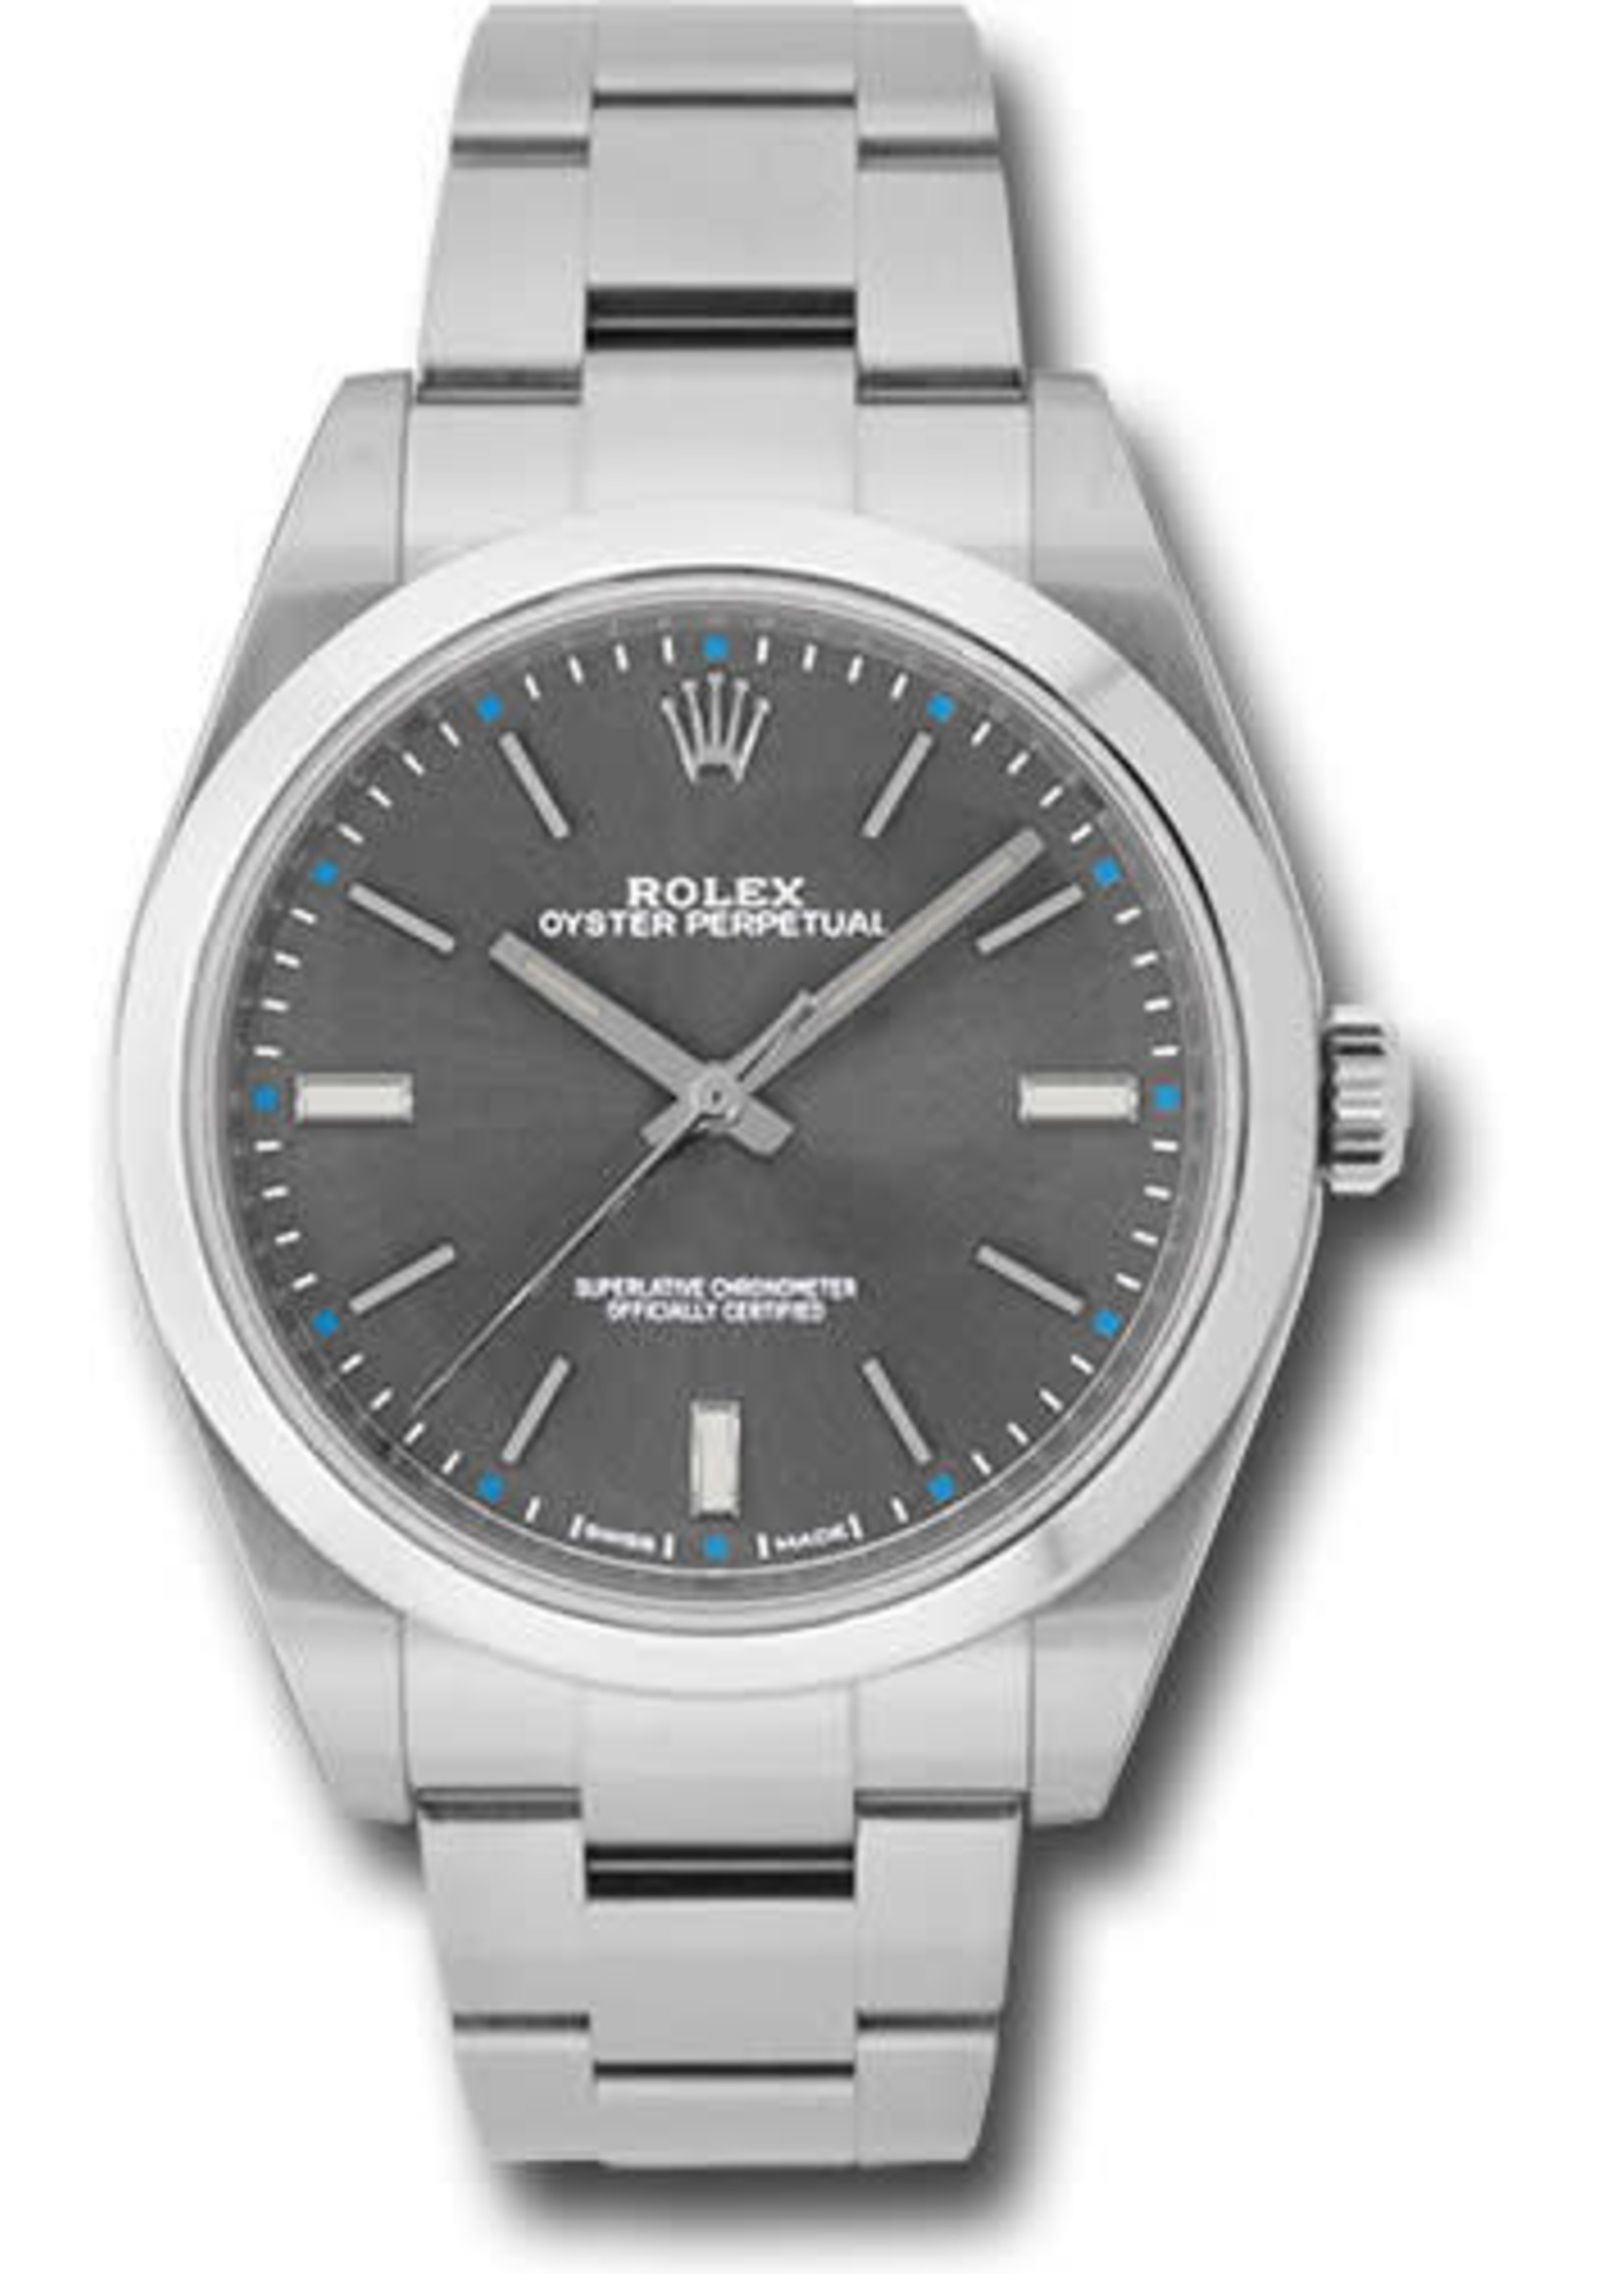 Rolex Watches ROLEX OYSTER PERPETUAL 39MM (2016 B+P) #114300